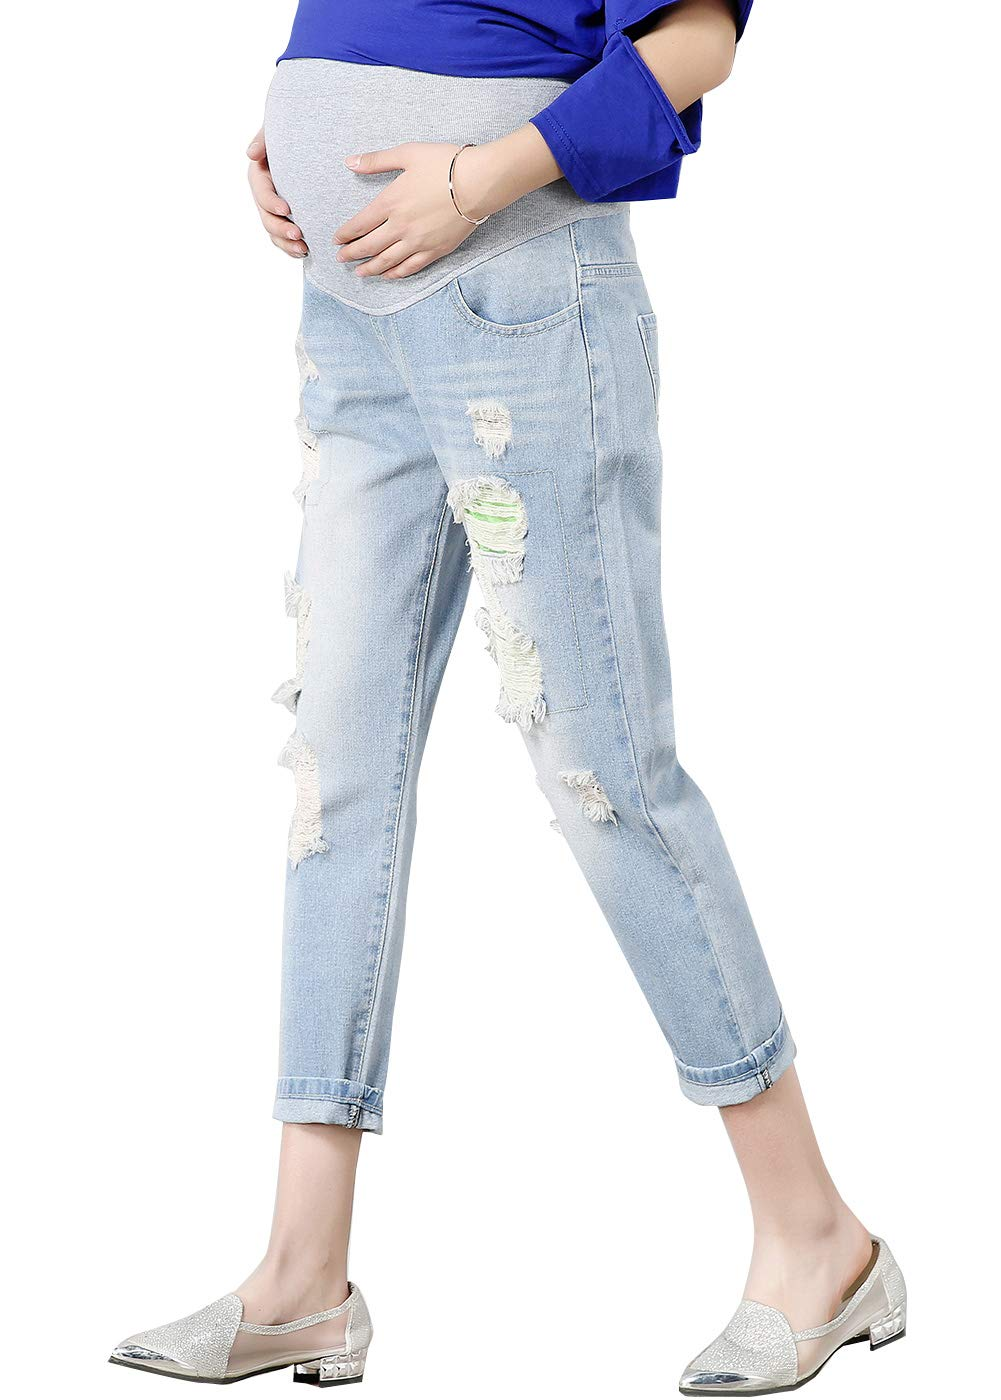 FEOYA Skinny Jeans for Pregnant Women Distressed Stretch Pants Leggings JINPIN